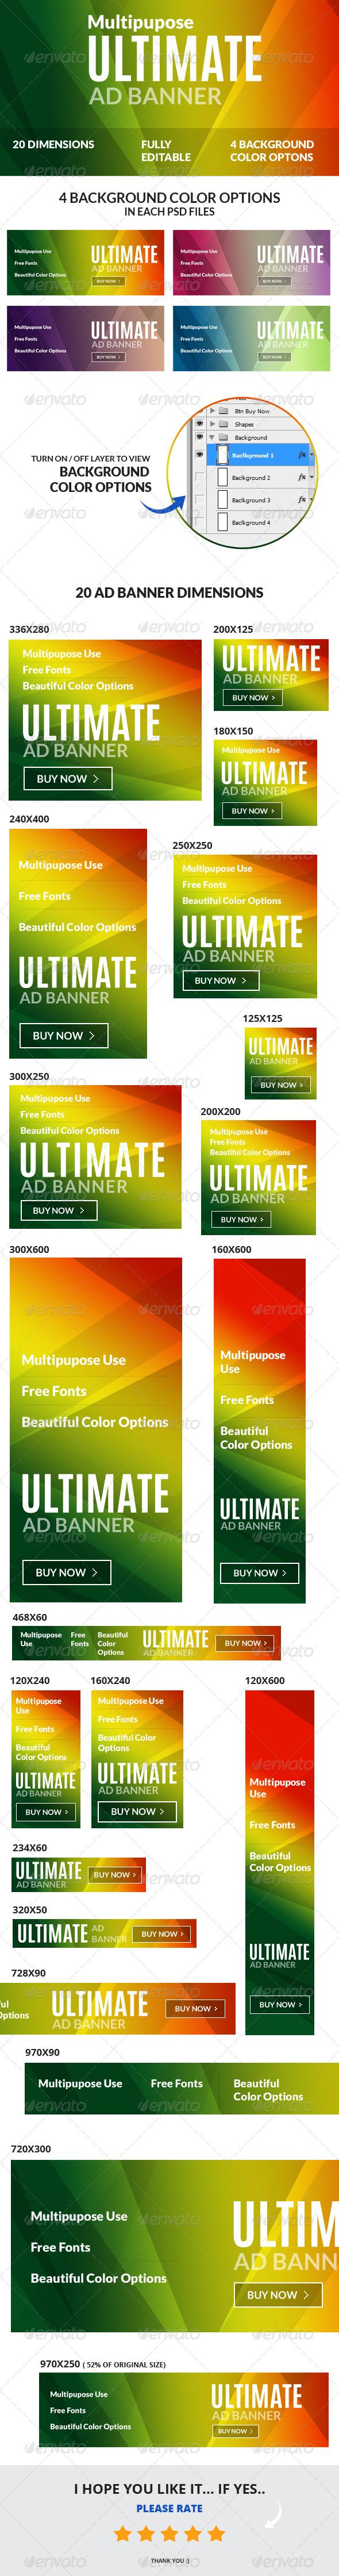 Multipurpose Ultimate Web Ad Banners are perfect suit for any kind of business promotion. You will get 20 Banner Dimensions with 4 background color options including google adwords banner sizes. All banner are well organized layer and fully editable.